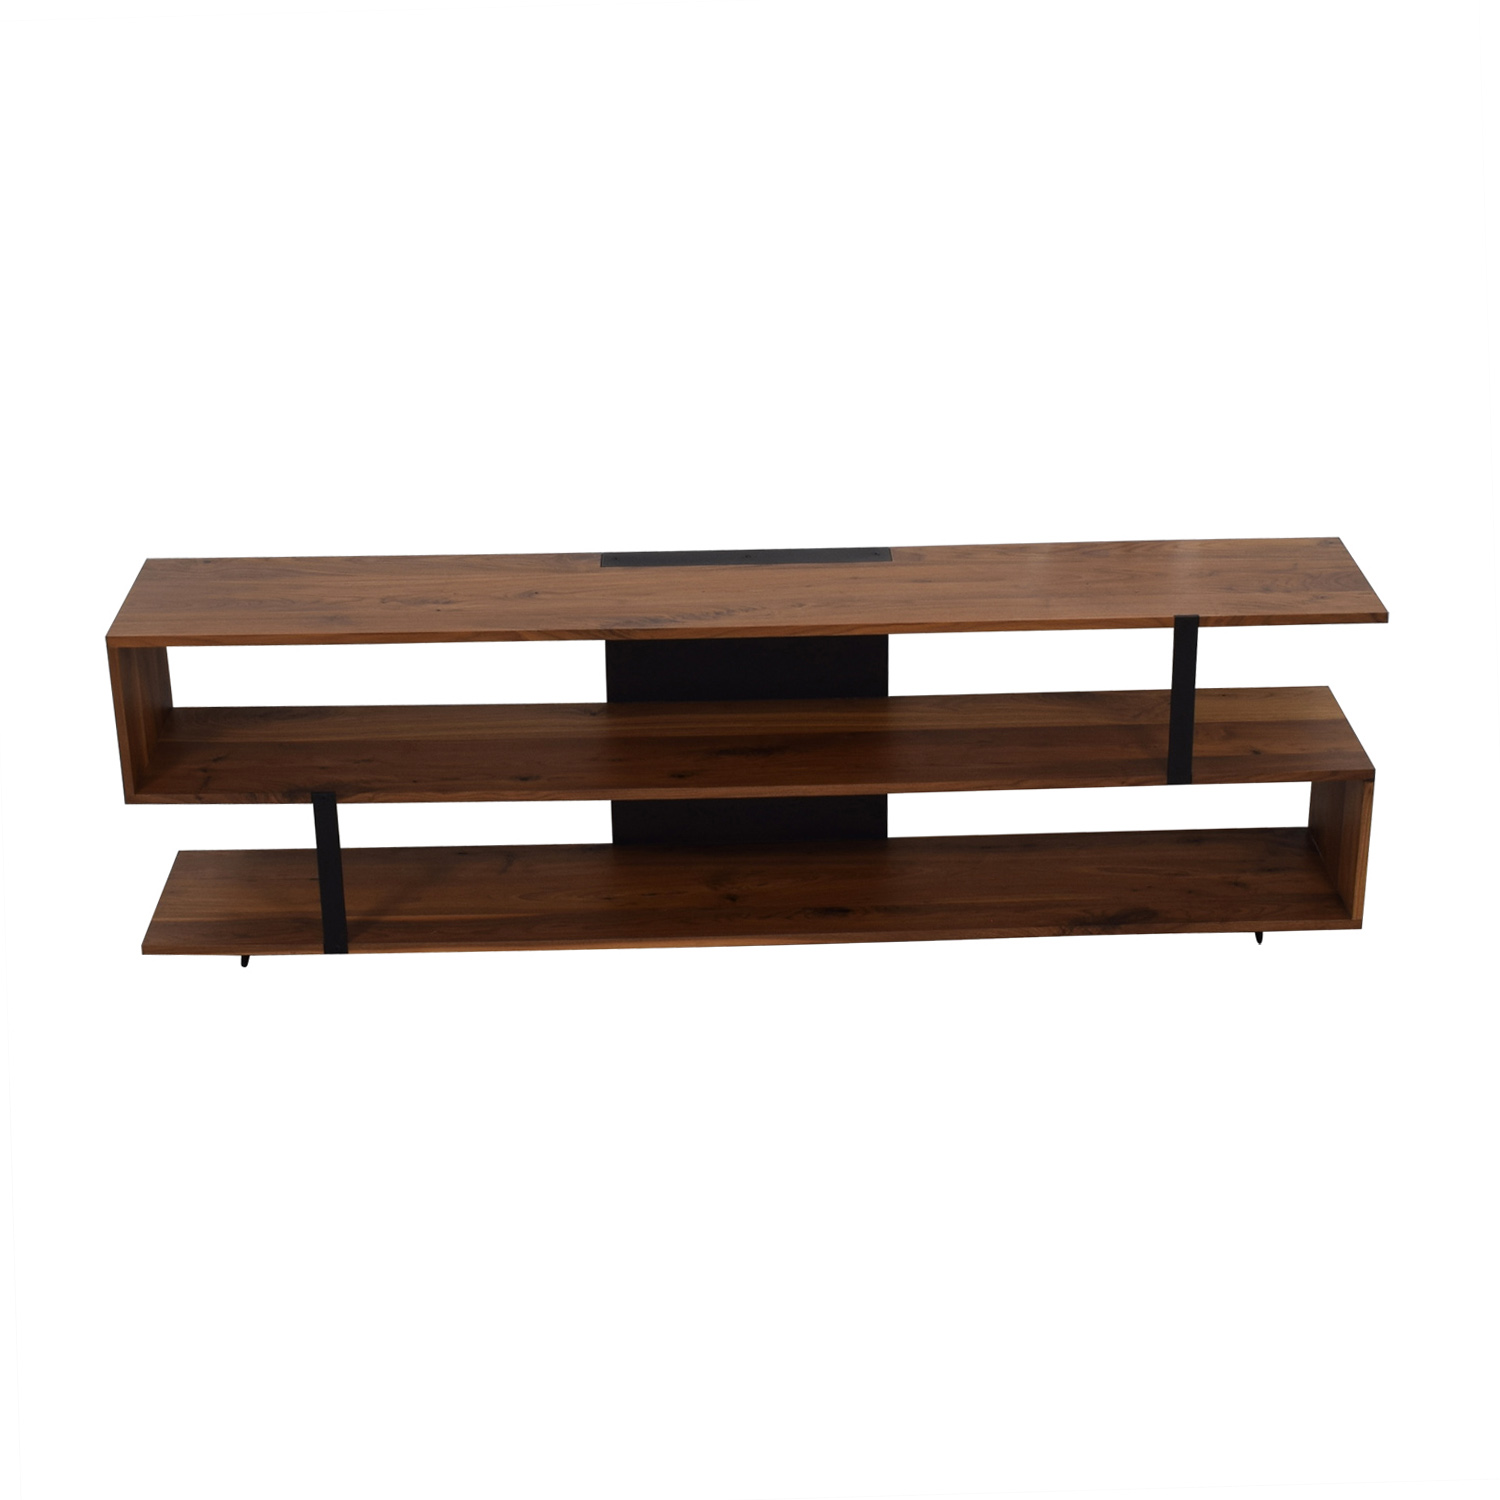 Crate & Barrel Crate & Barrel Wood Media Stand dimensions